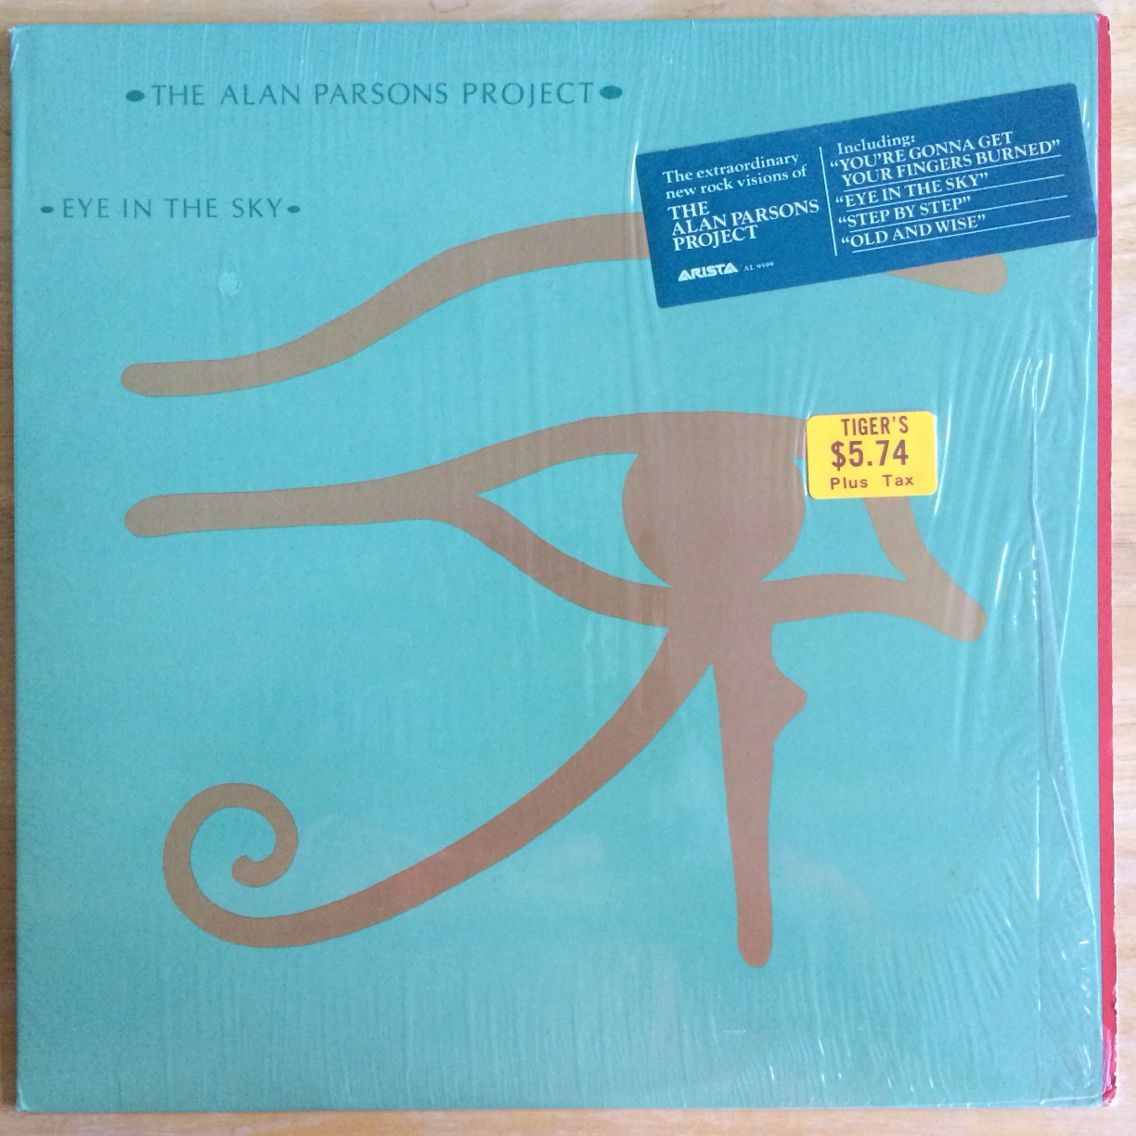 The Alan Parsons Project Eye In The Sky With Images Alan